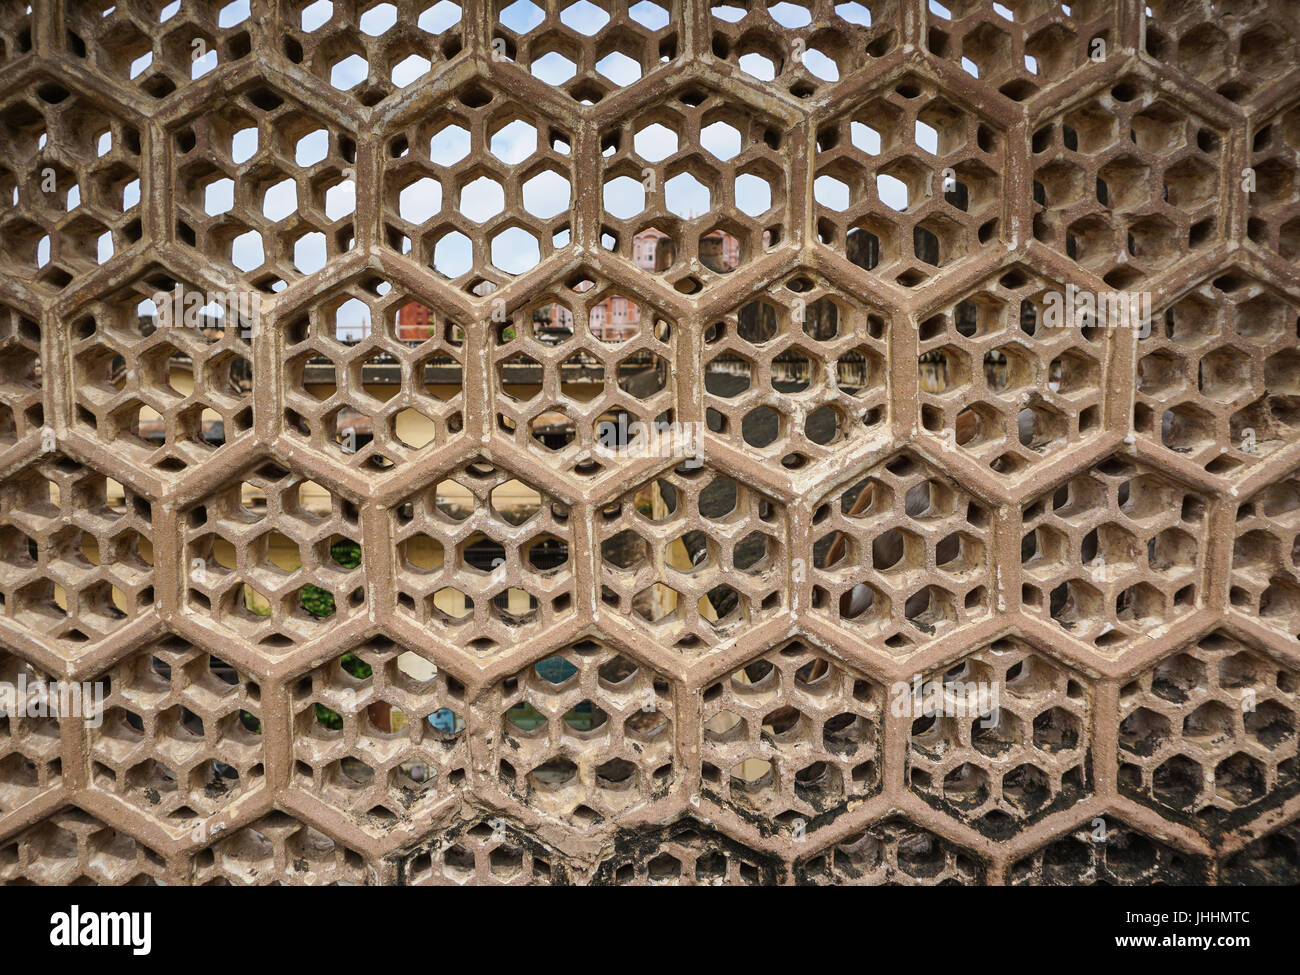 stone louver with window at the ancient castle in jaipur, india